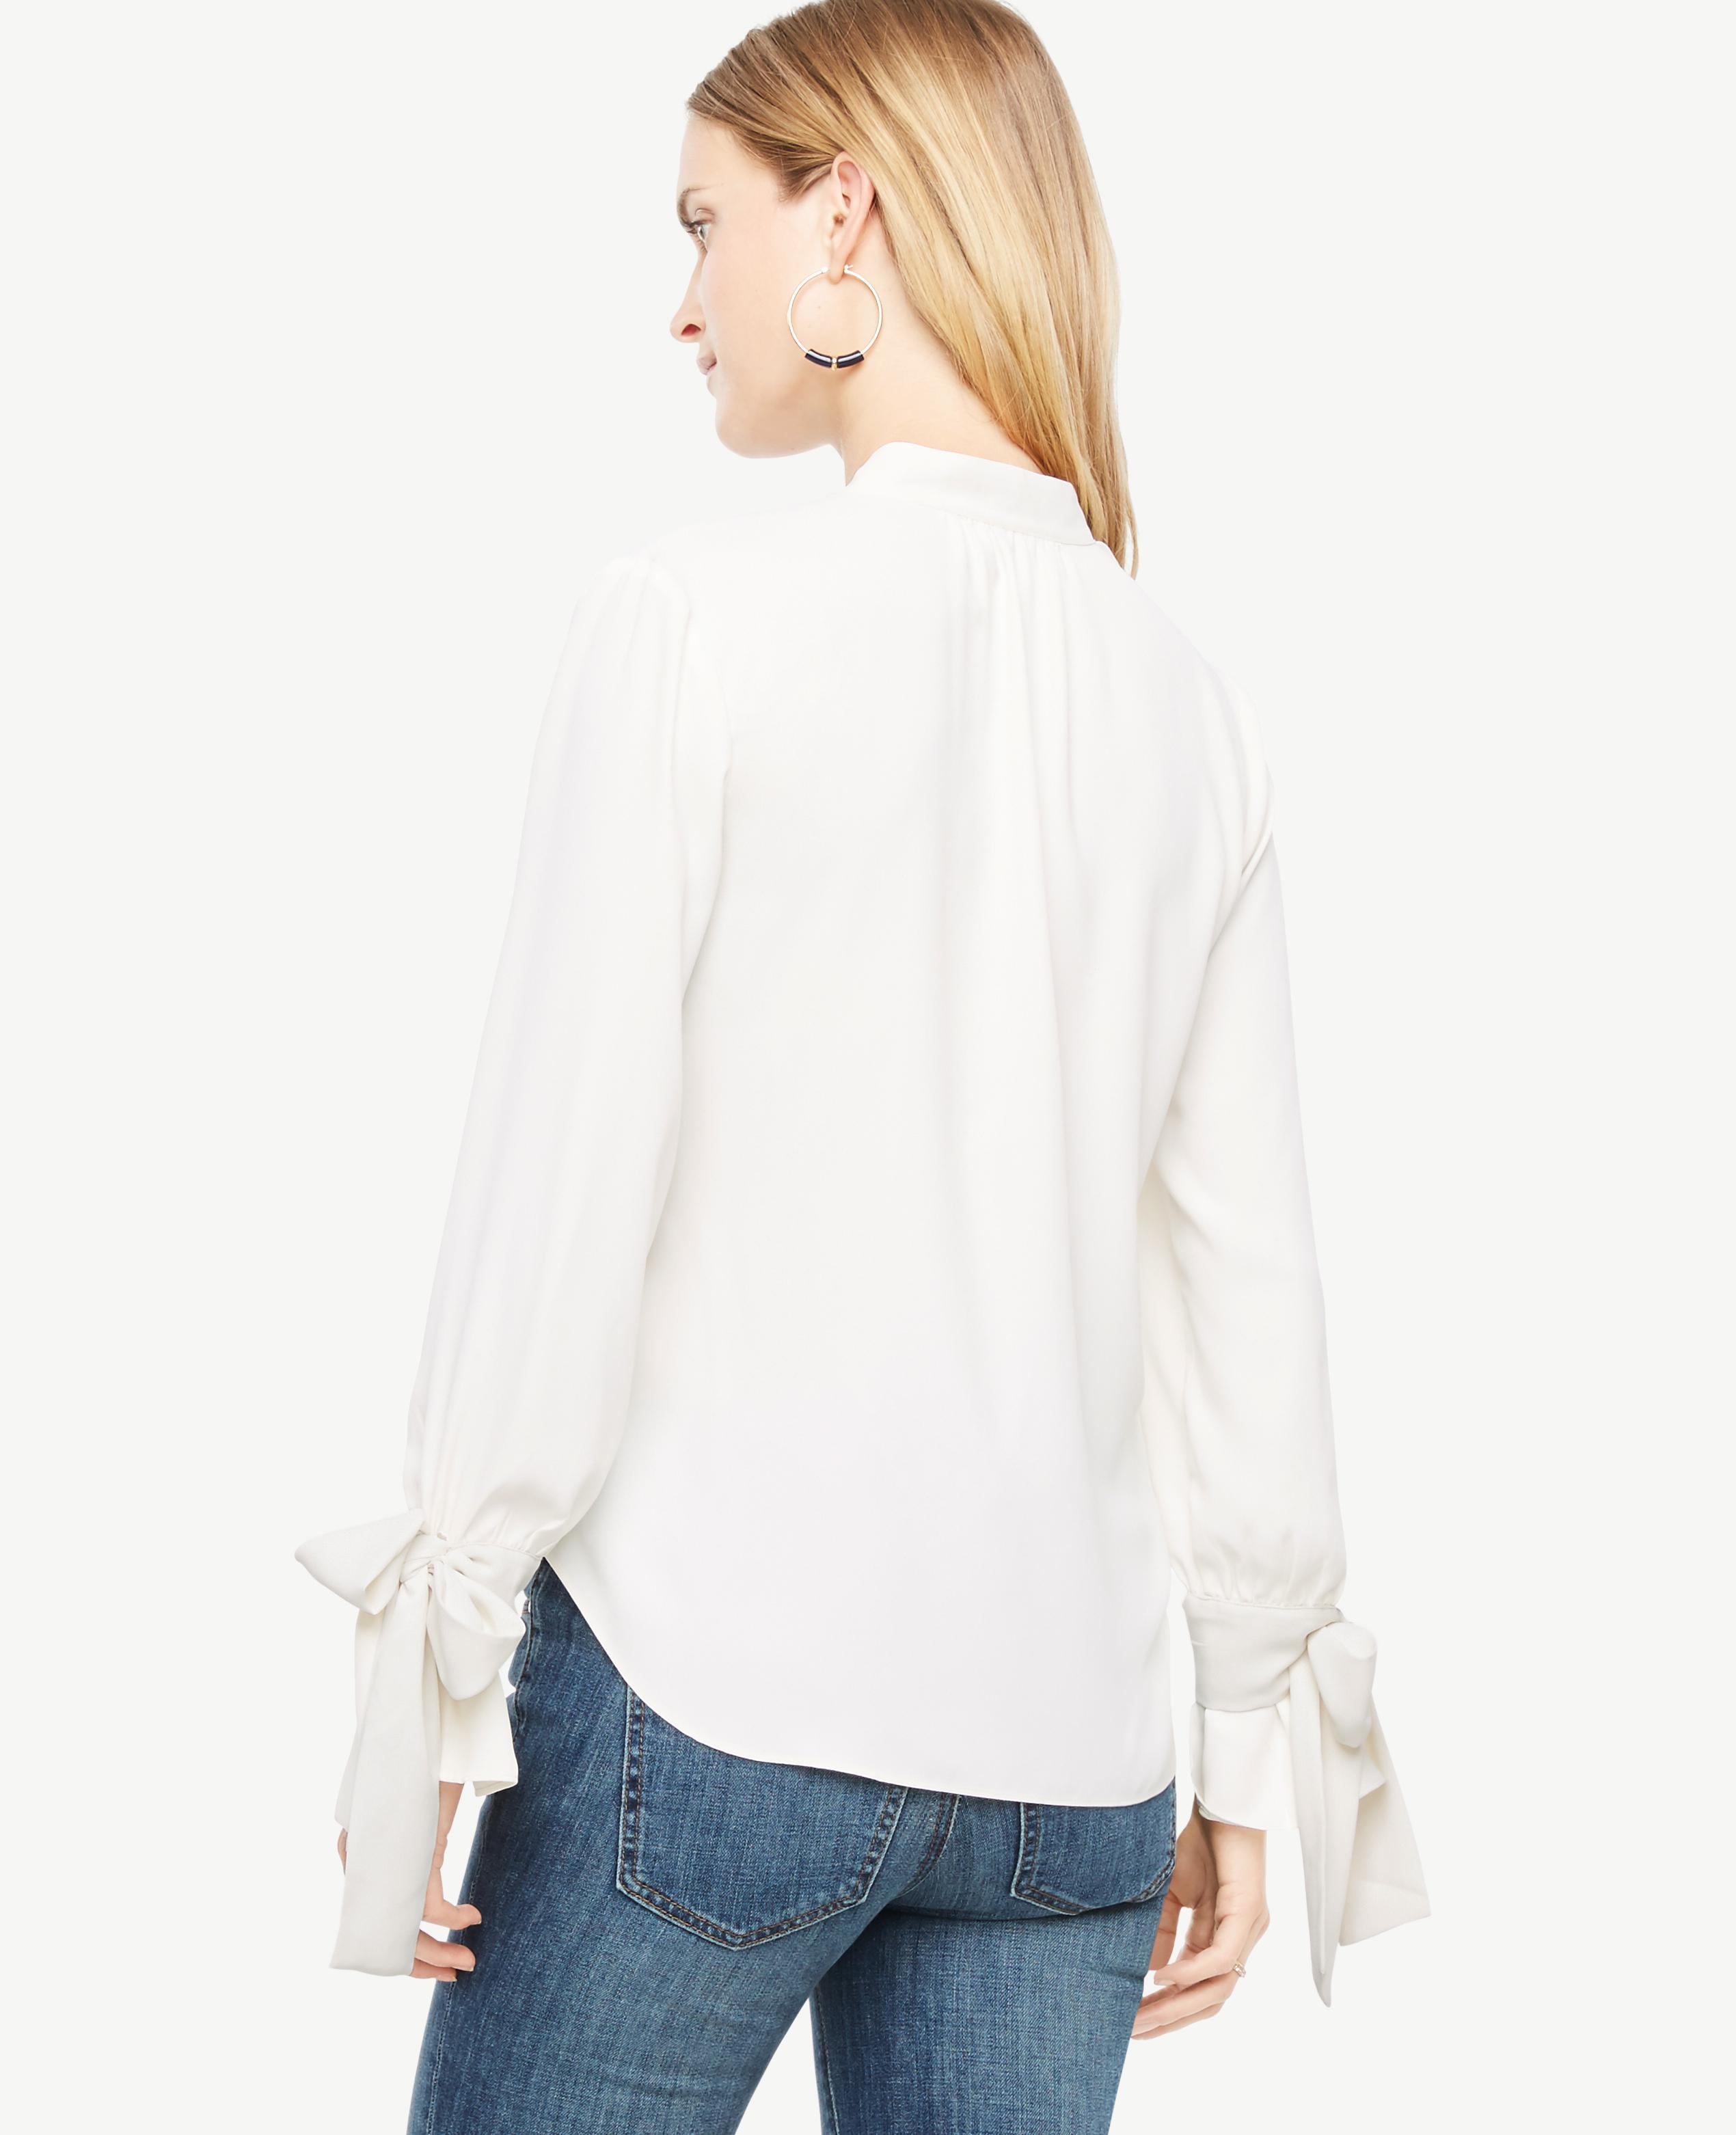 8f7c0db8952850 Ann Taylor Petite Bow Cuff Blouse in White - Lyst